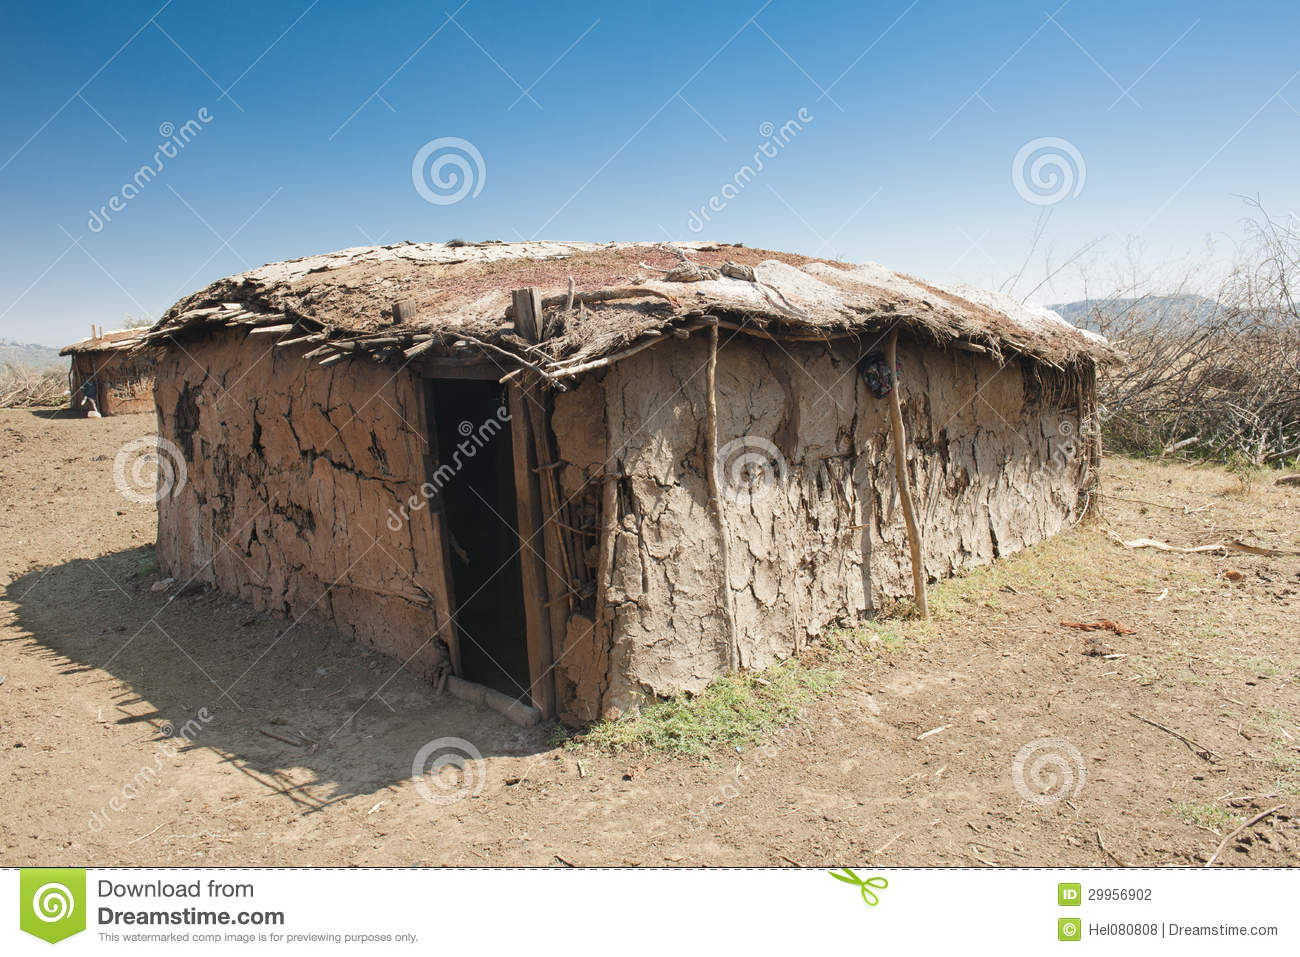 Masai hut stock photo. Image of women, roof, destitution ...